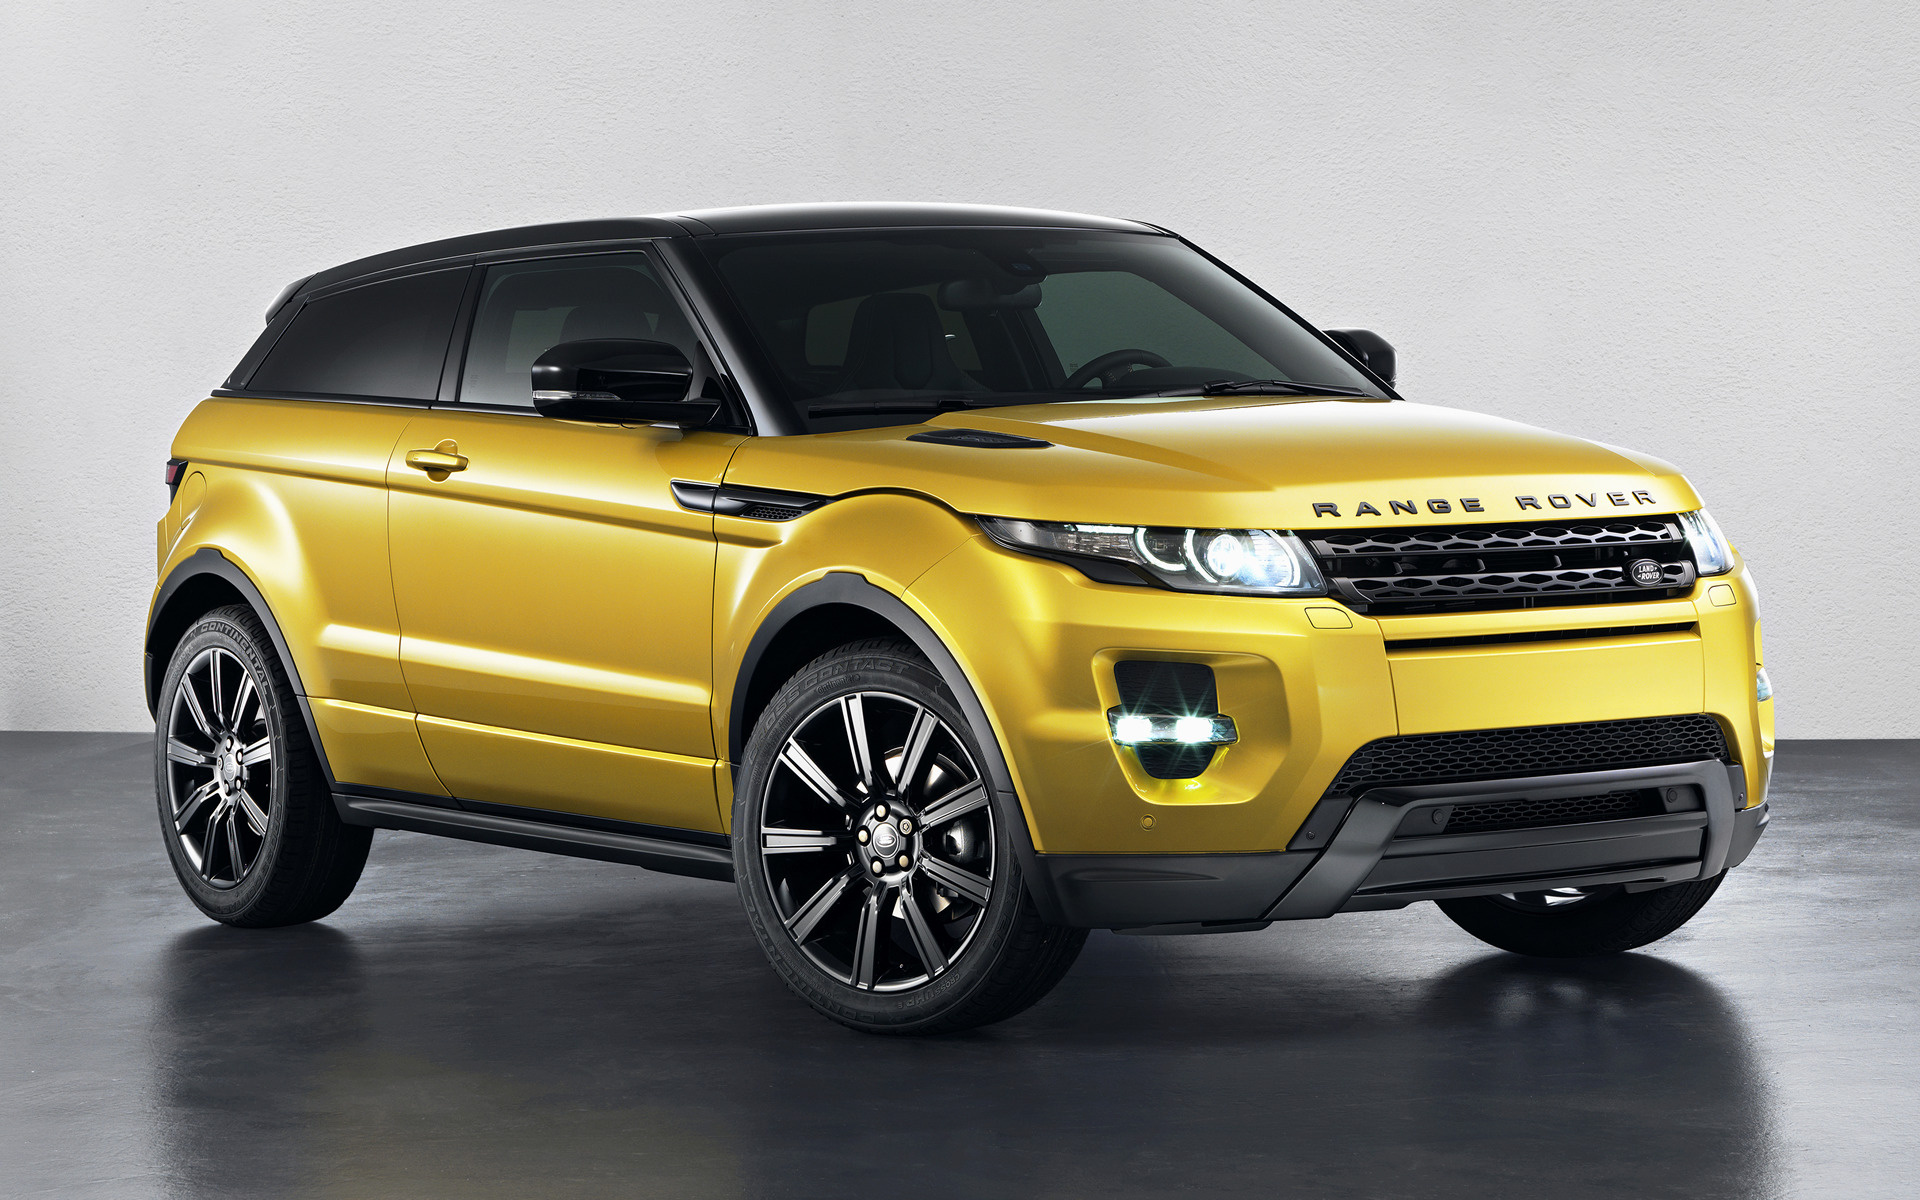 range rover evoque coupe sicilian yellow 2013 wallpapers and hd images car pixel. Black Bedroom Furniture Sets. Home Design Ideas